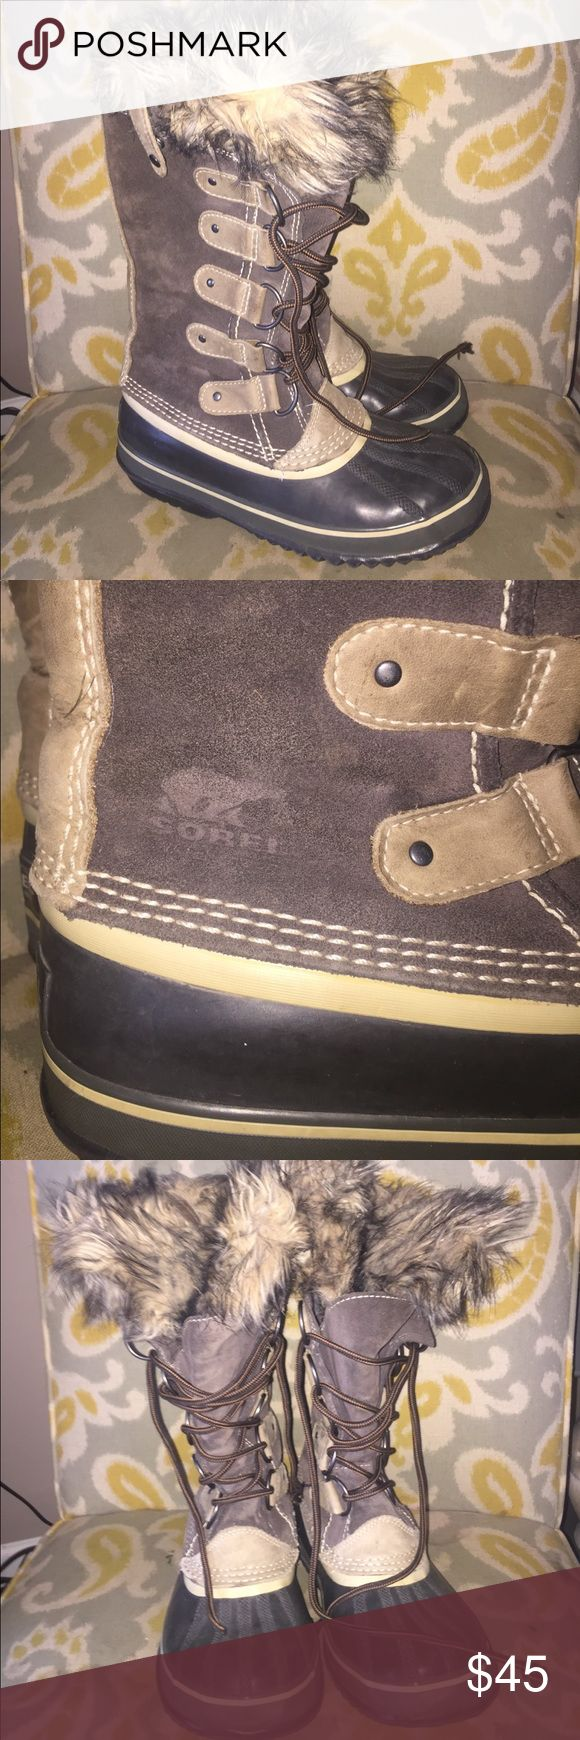 Ladies sorel winter boots Sz 8 lined brown suede Ladies Sorel boots. Size 8. Brown & tan suede. Faux fur lining. Preowned. Good condition. Thanks for looking. sorel Shoes Winter & Rain Boots